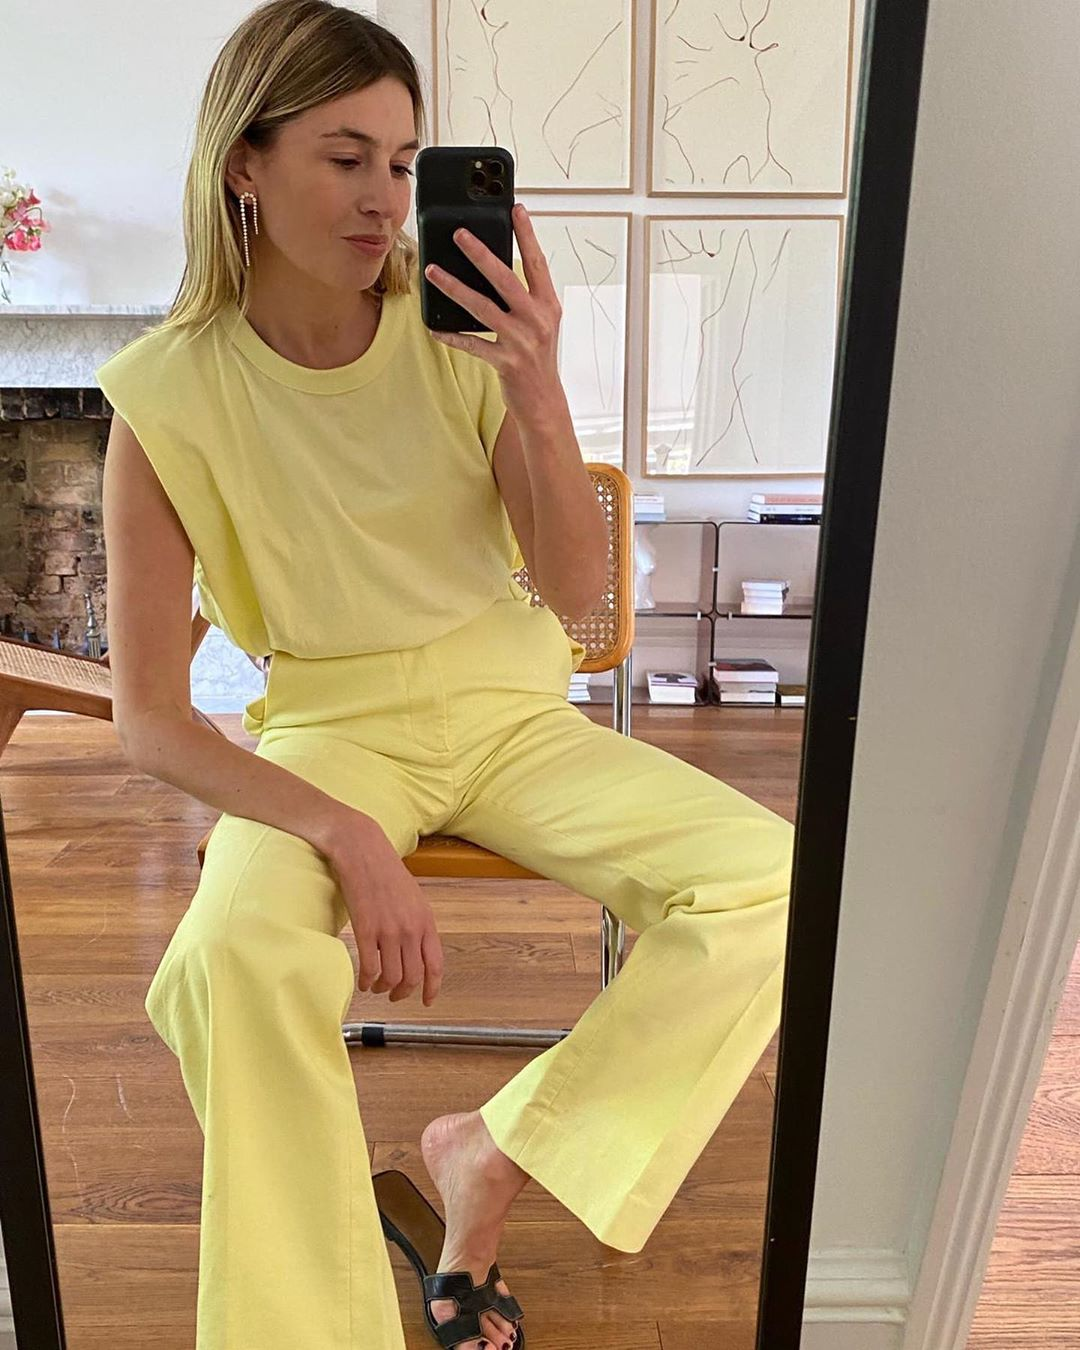 frankie-shop-x-camille-charriere-eva-padded-shoulder-muscle-t-shirt-in-yellow